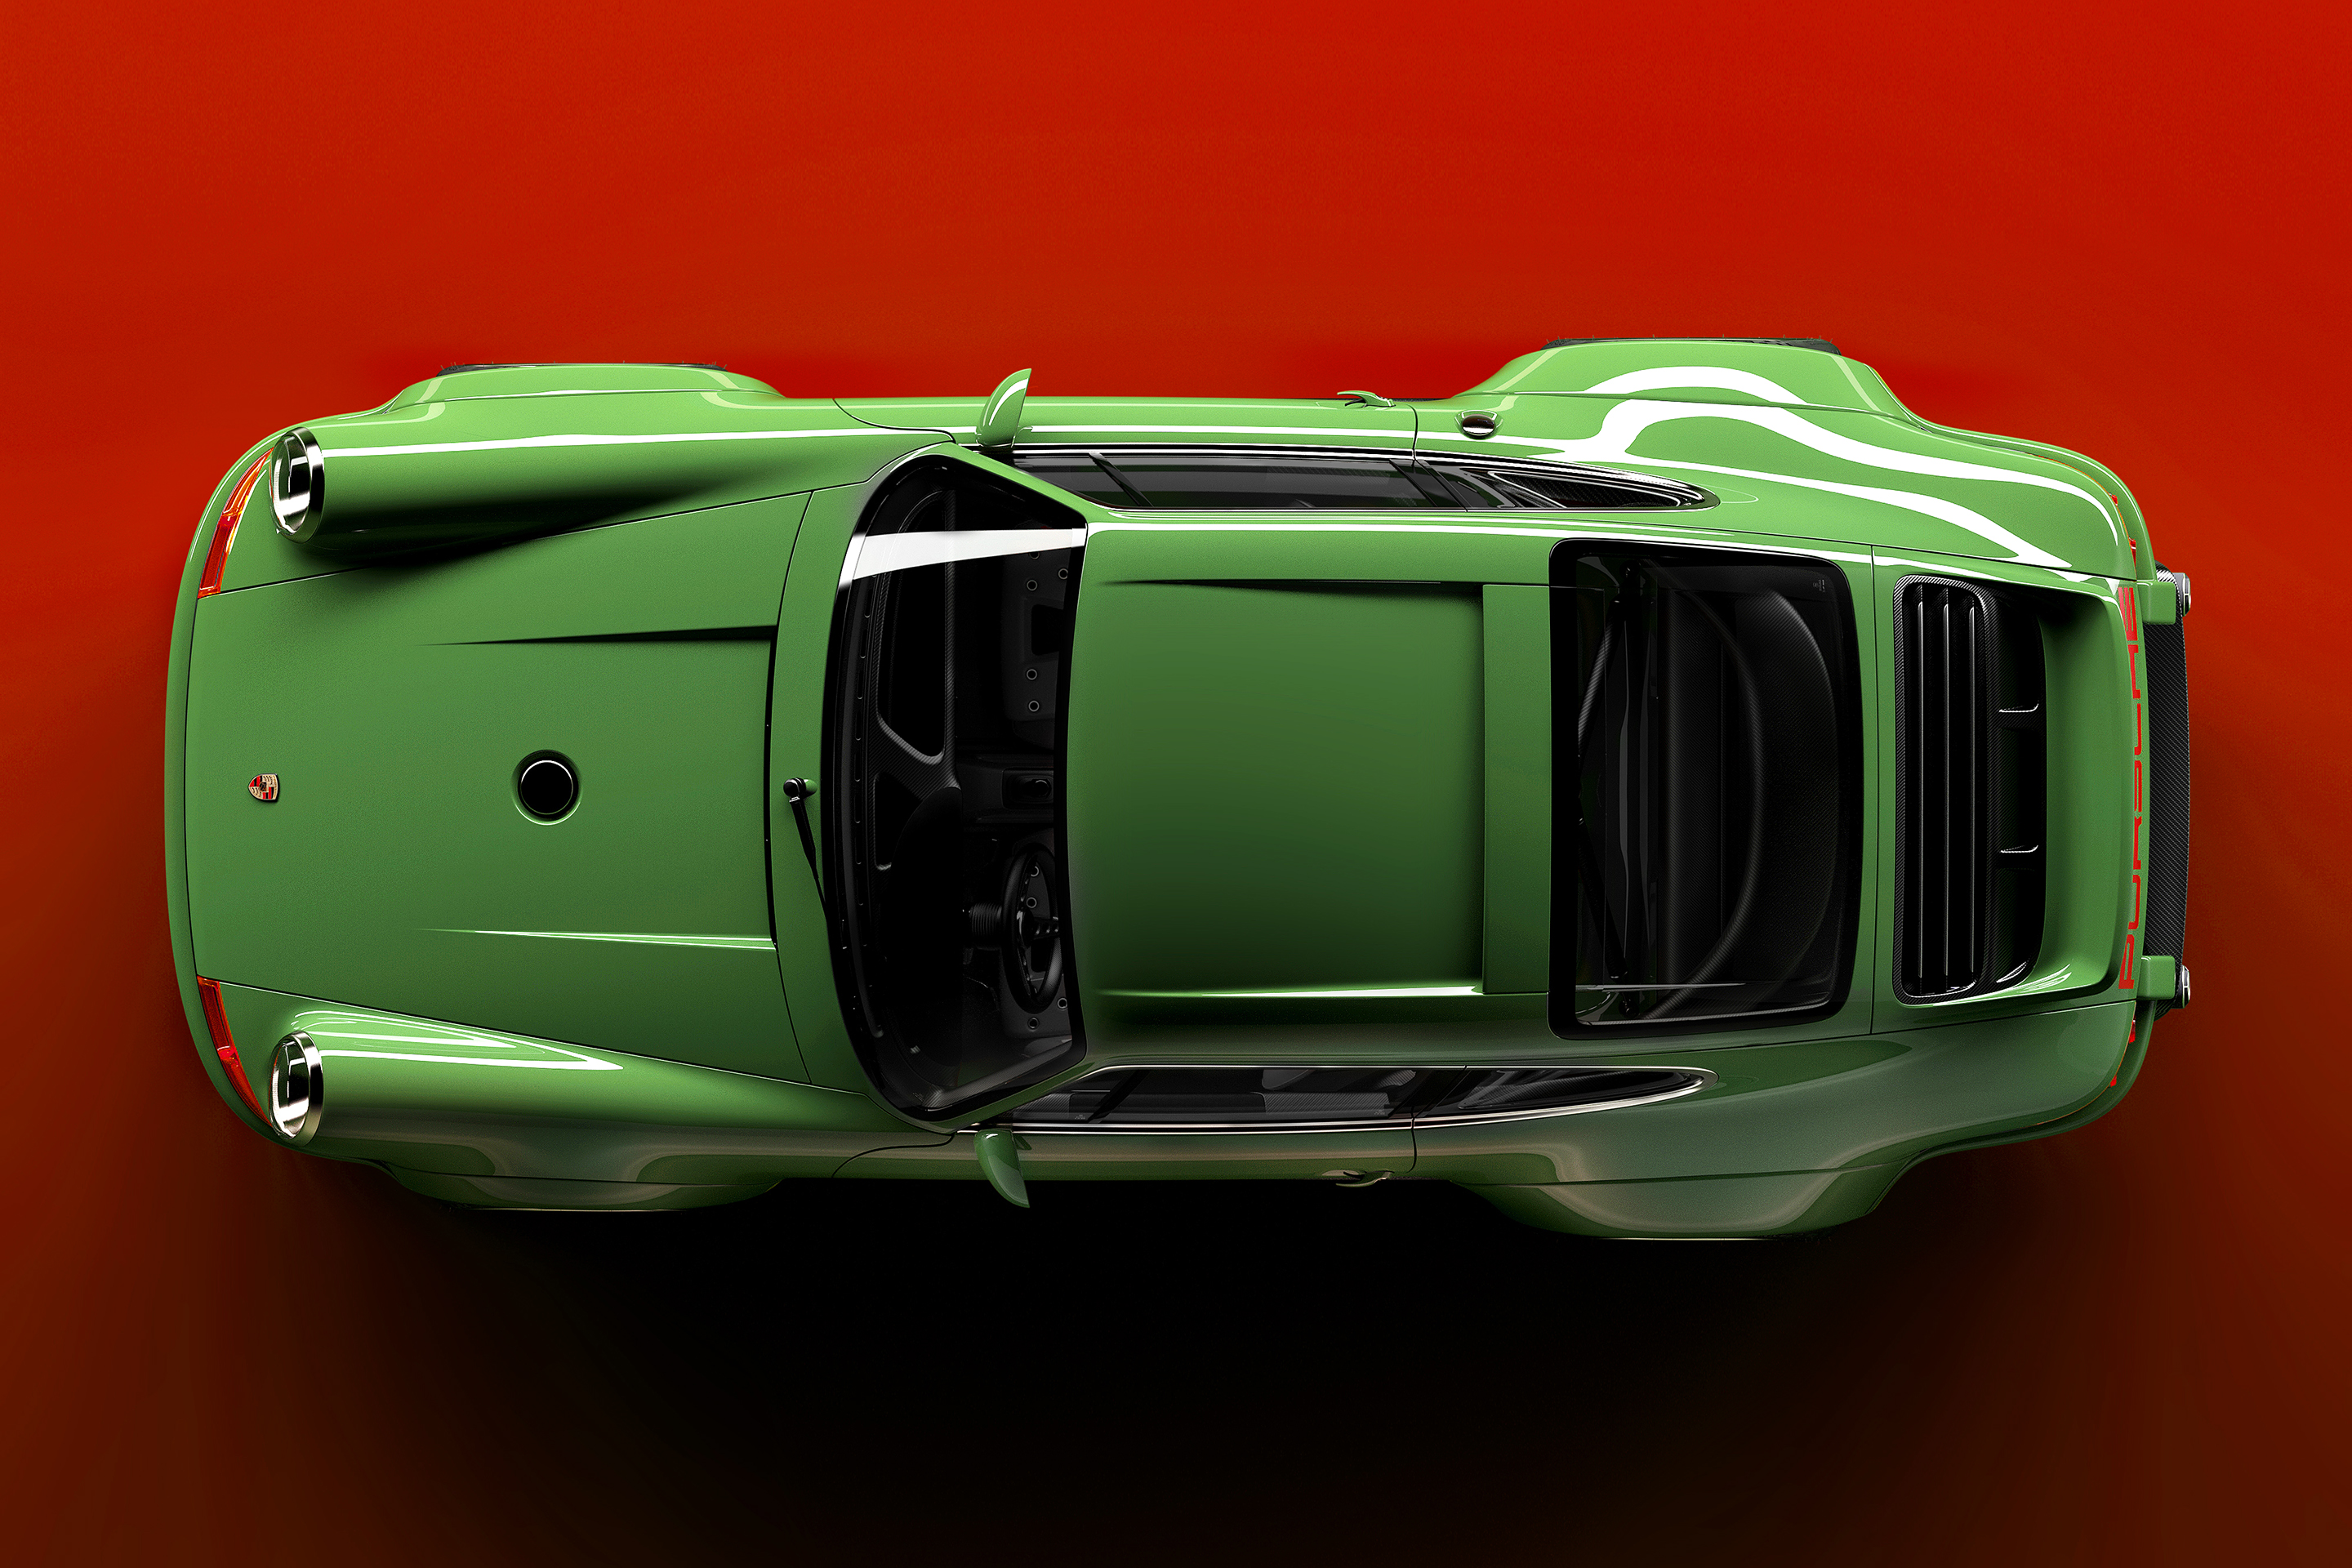 Singer Vehicle Design: The Ultimate Porsche 911 Comes From